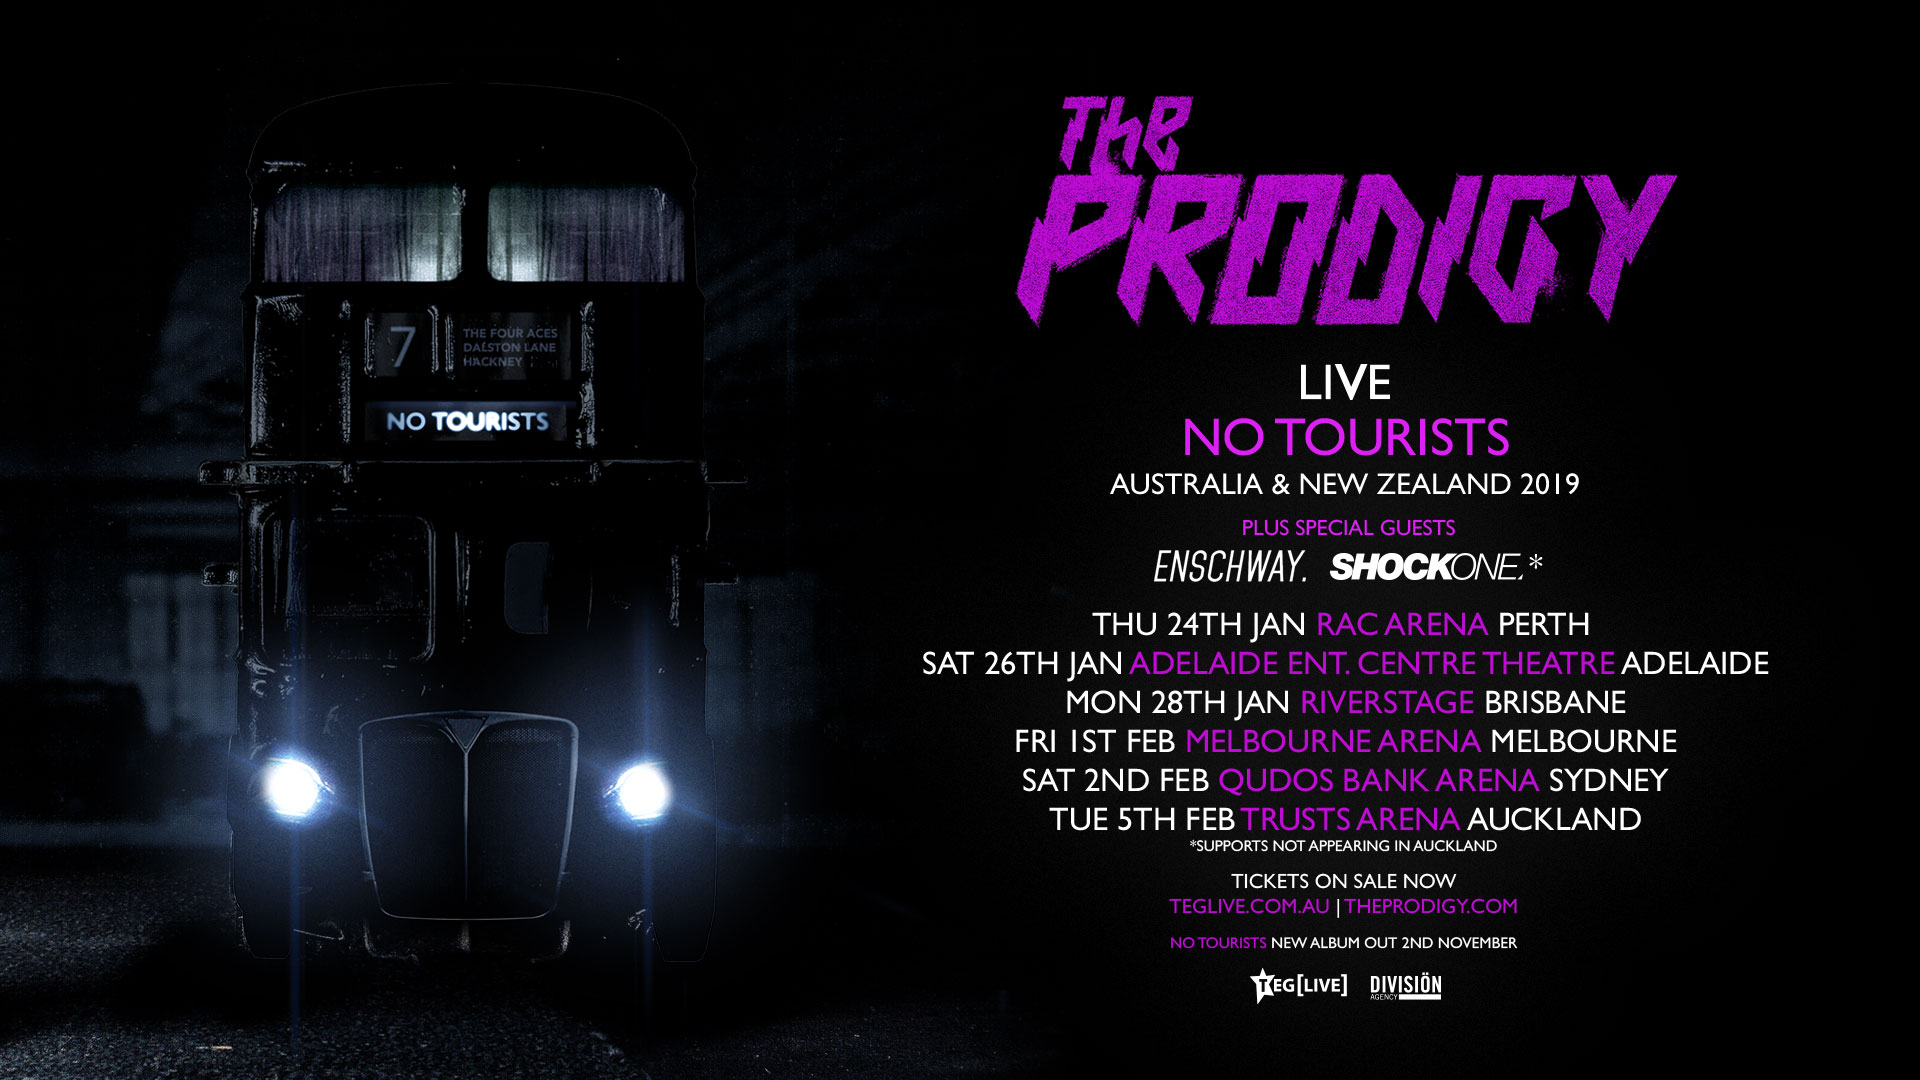 THE PRODIGY RETURN TO AUSTRALIA & NZ IN 2019 FOR THEIR 'NO TOURISTS